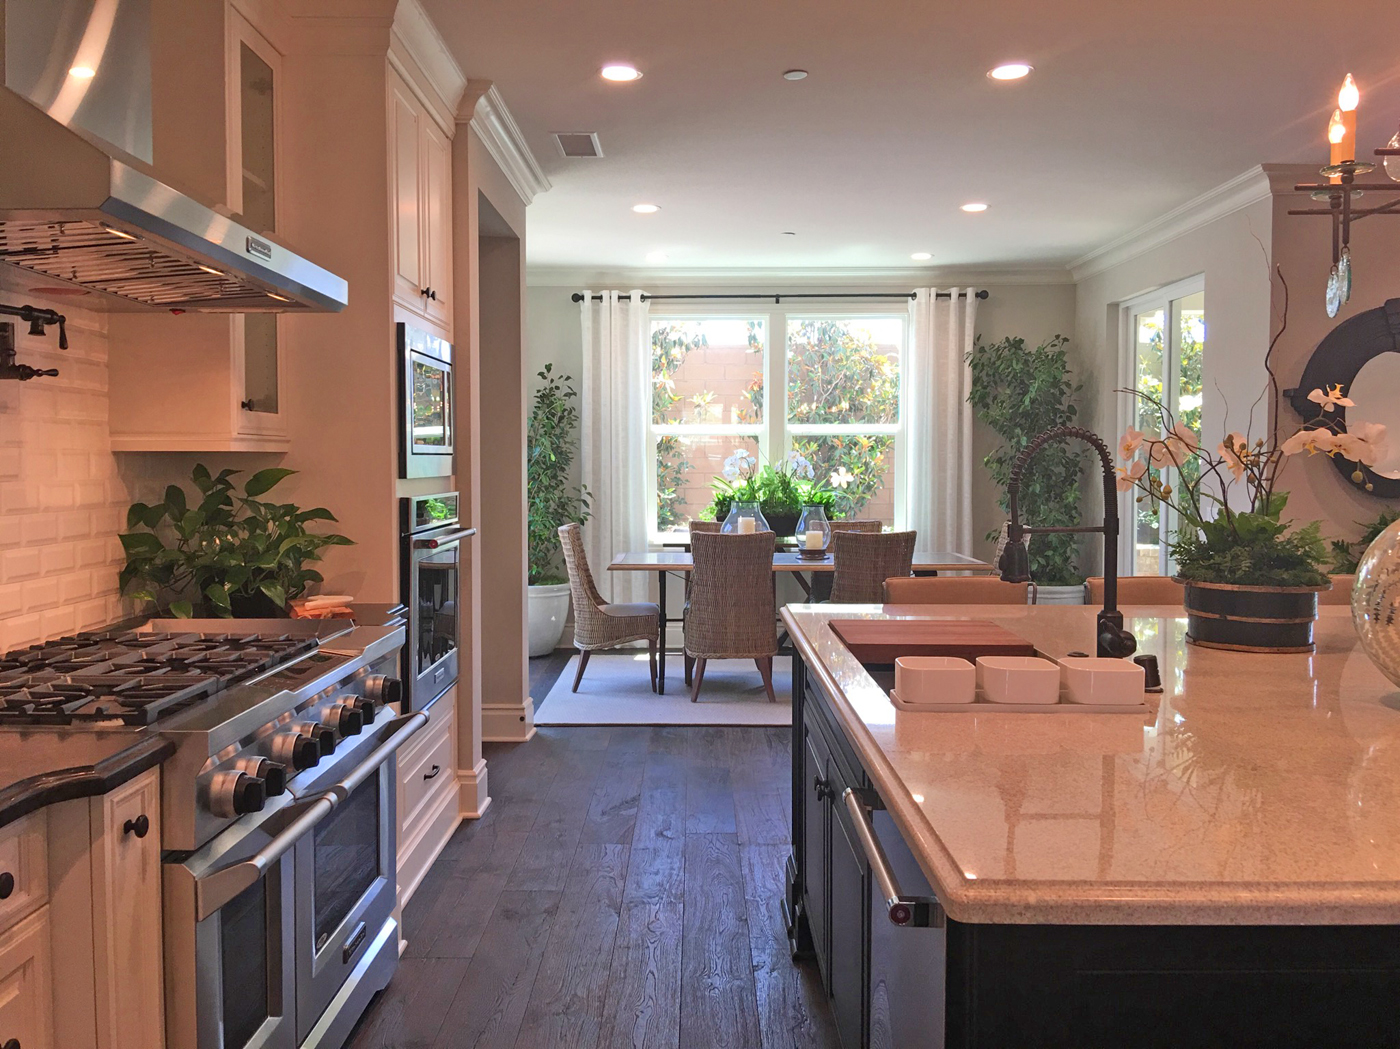 Oakmont Plan 3 Model Home Beacon Park Irvine Kitchen and Dining